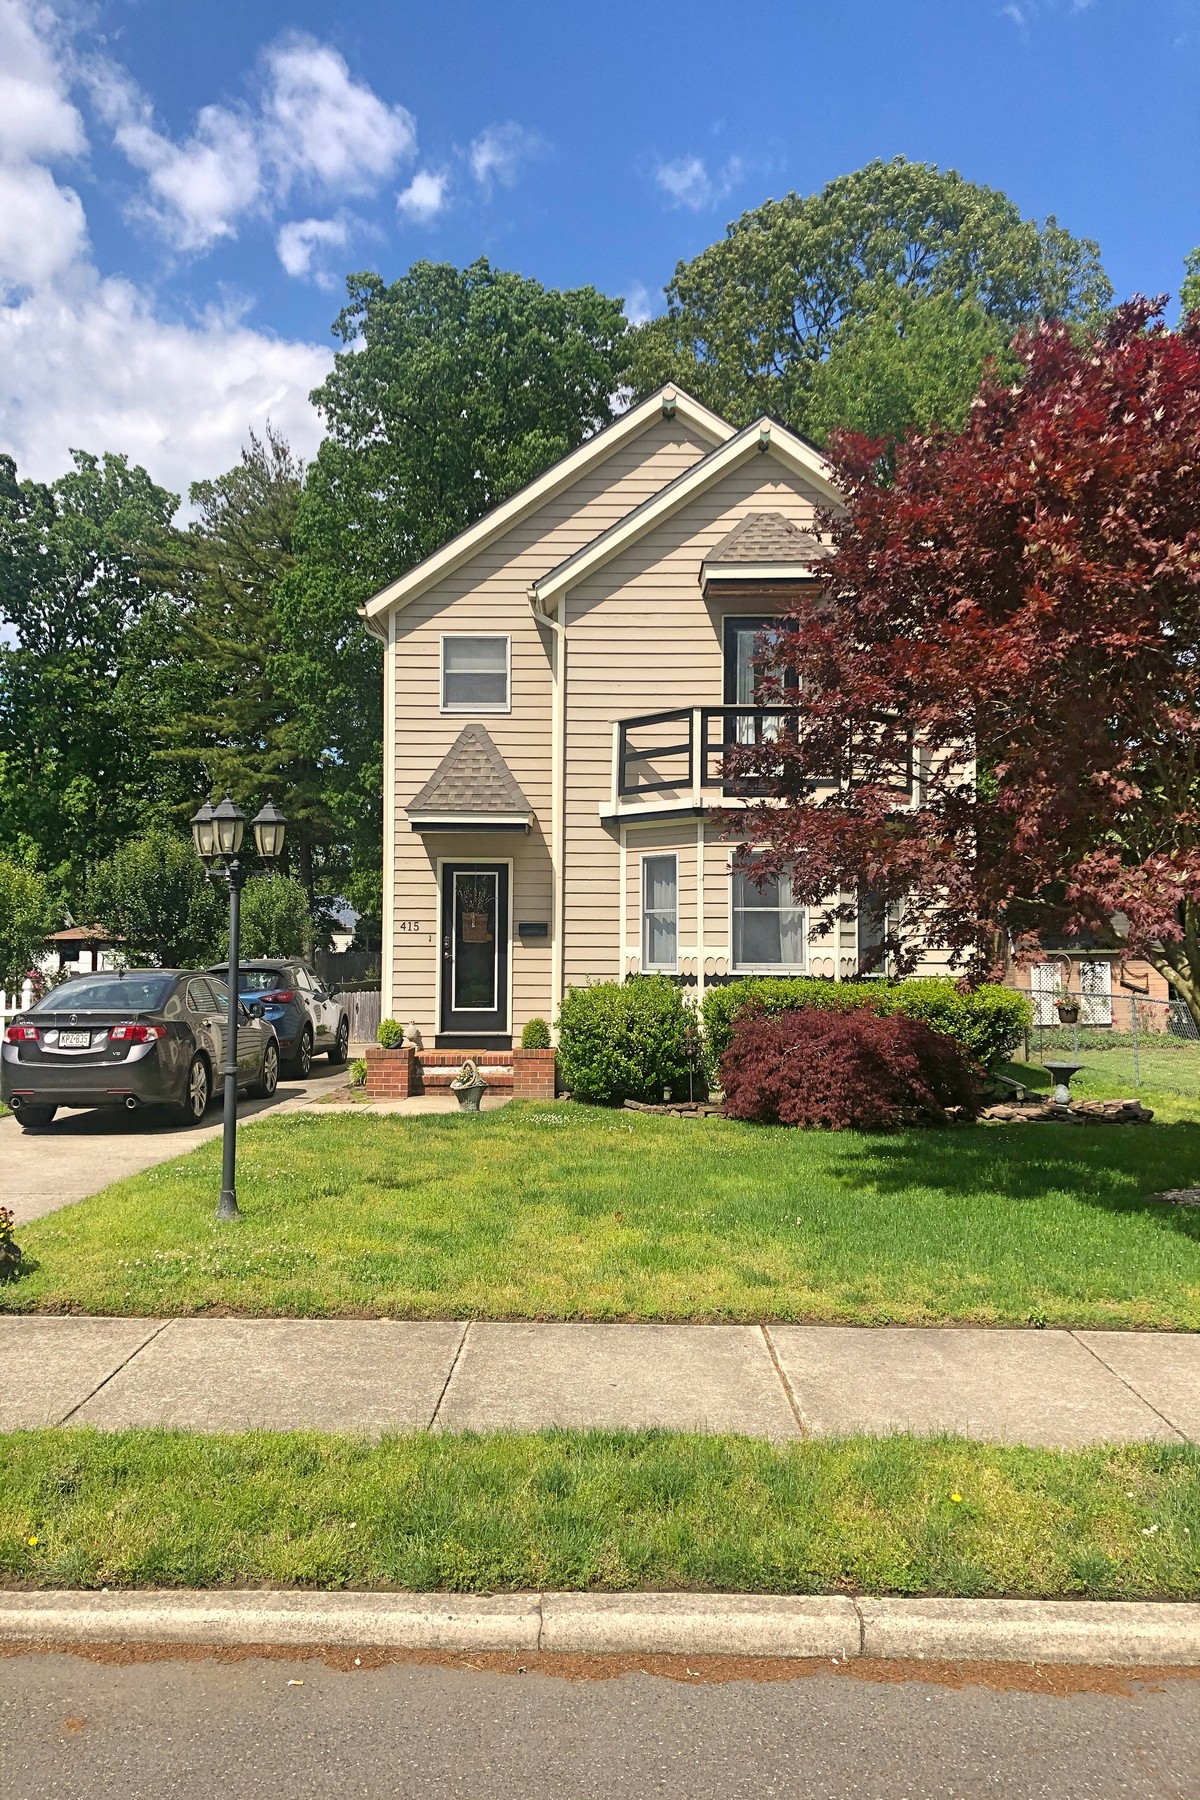 Single Family Homes for Active at Move-in Ready 415 Mount Vernon Ave Northfield, New Jersey 08225 United States